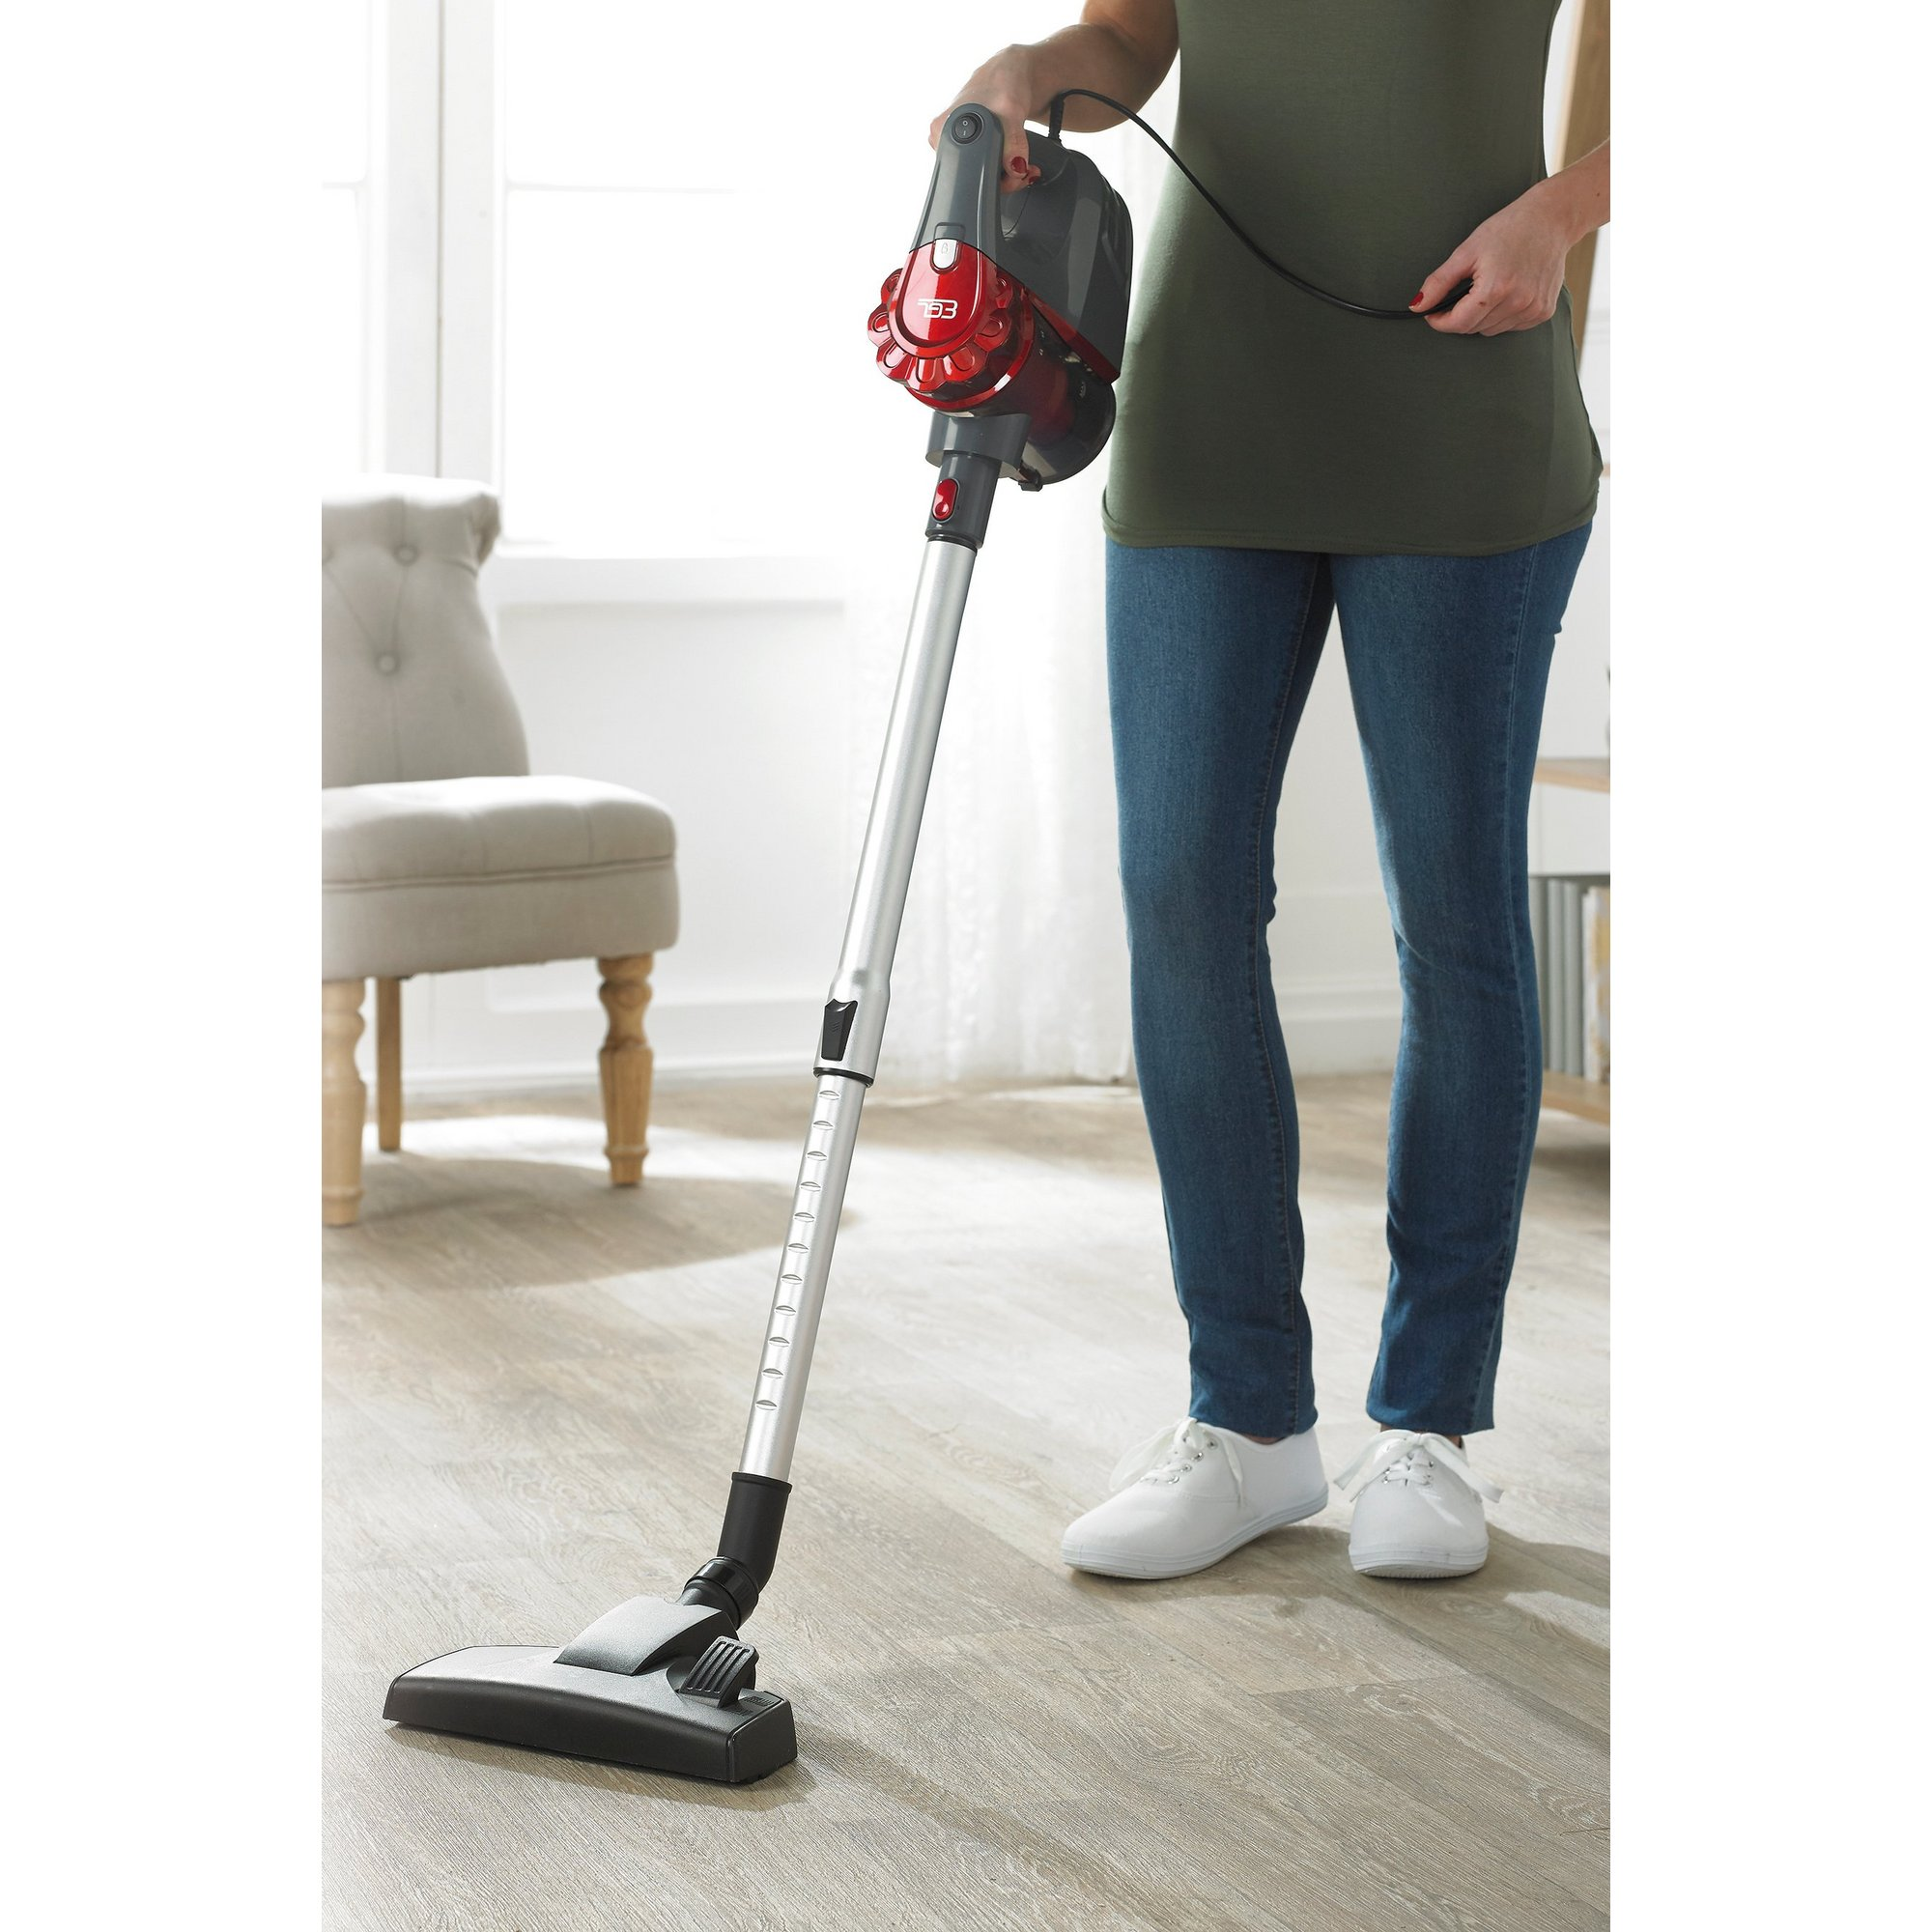 Image of 2-in-1 Corded Stick Vac